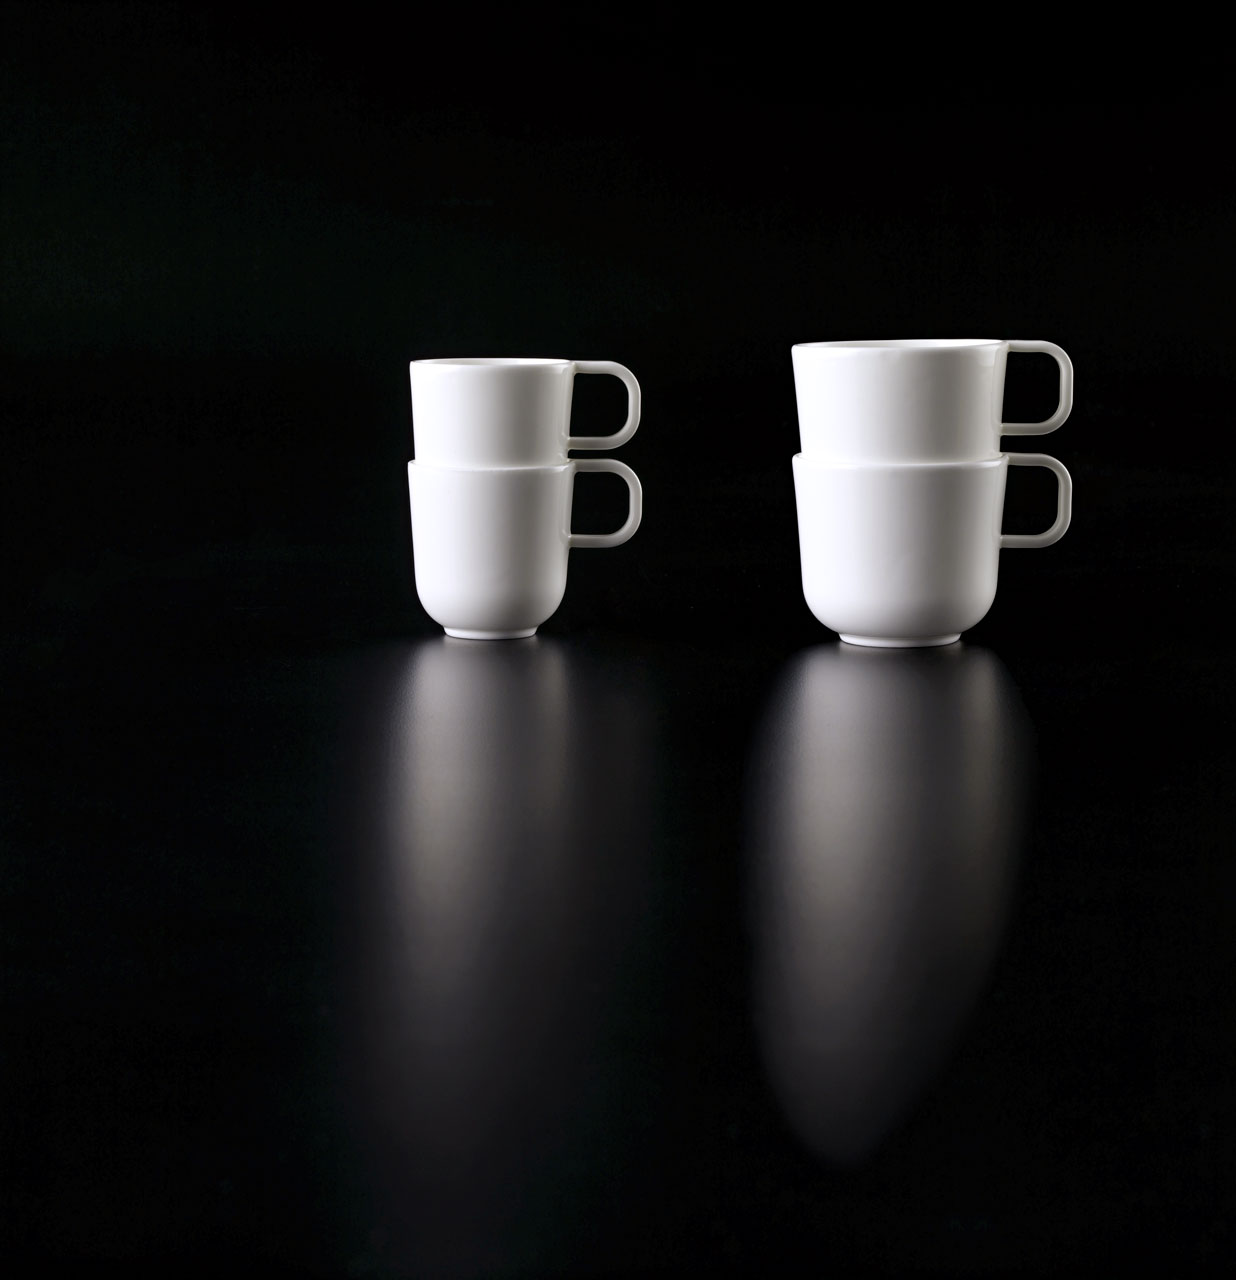 Bent Brandt - TABL white bone china S2 cups